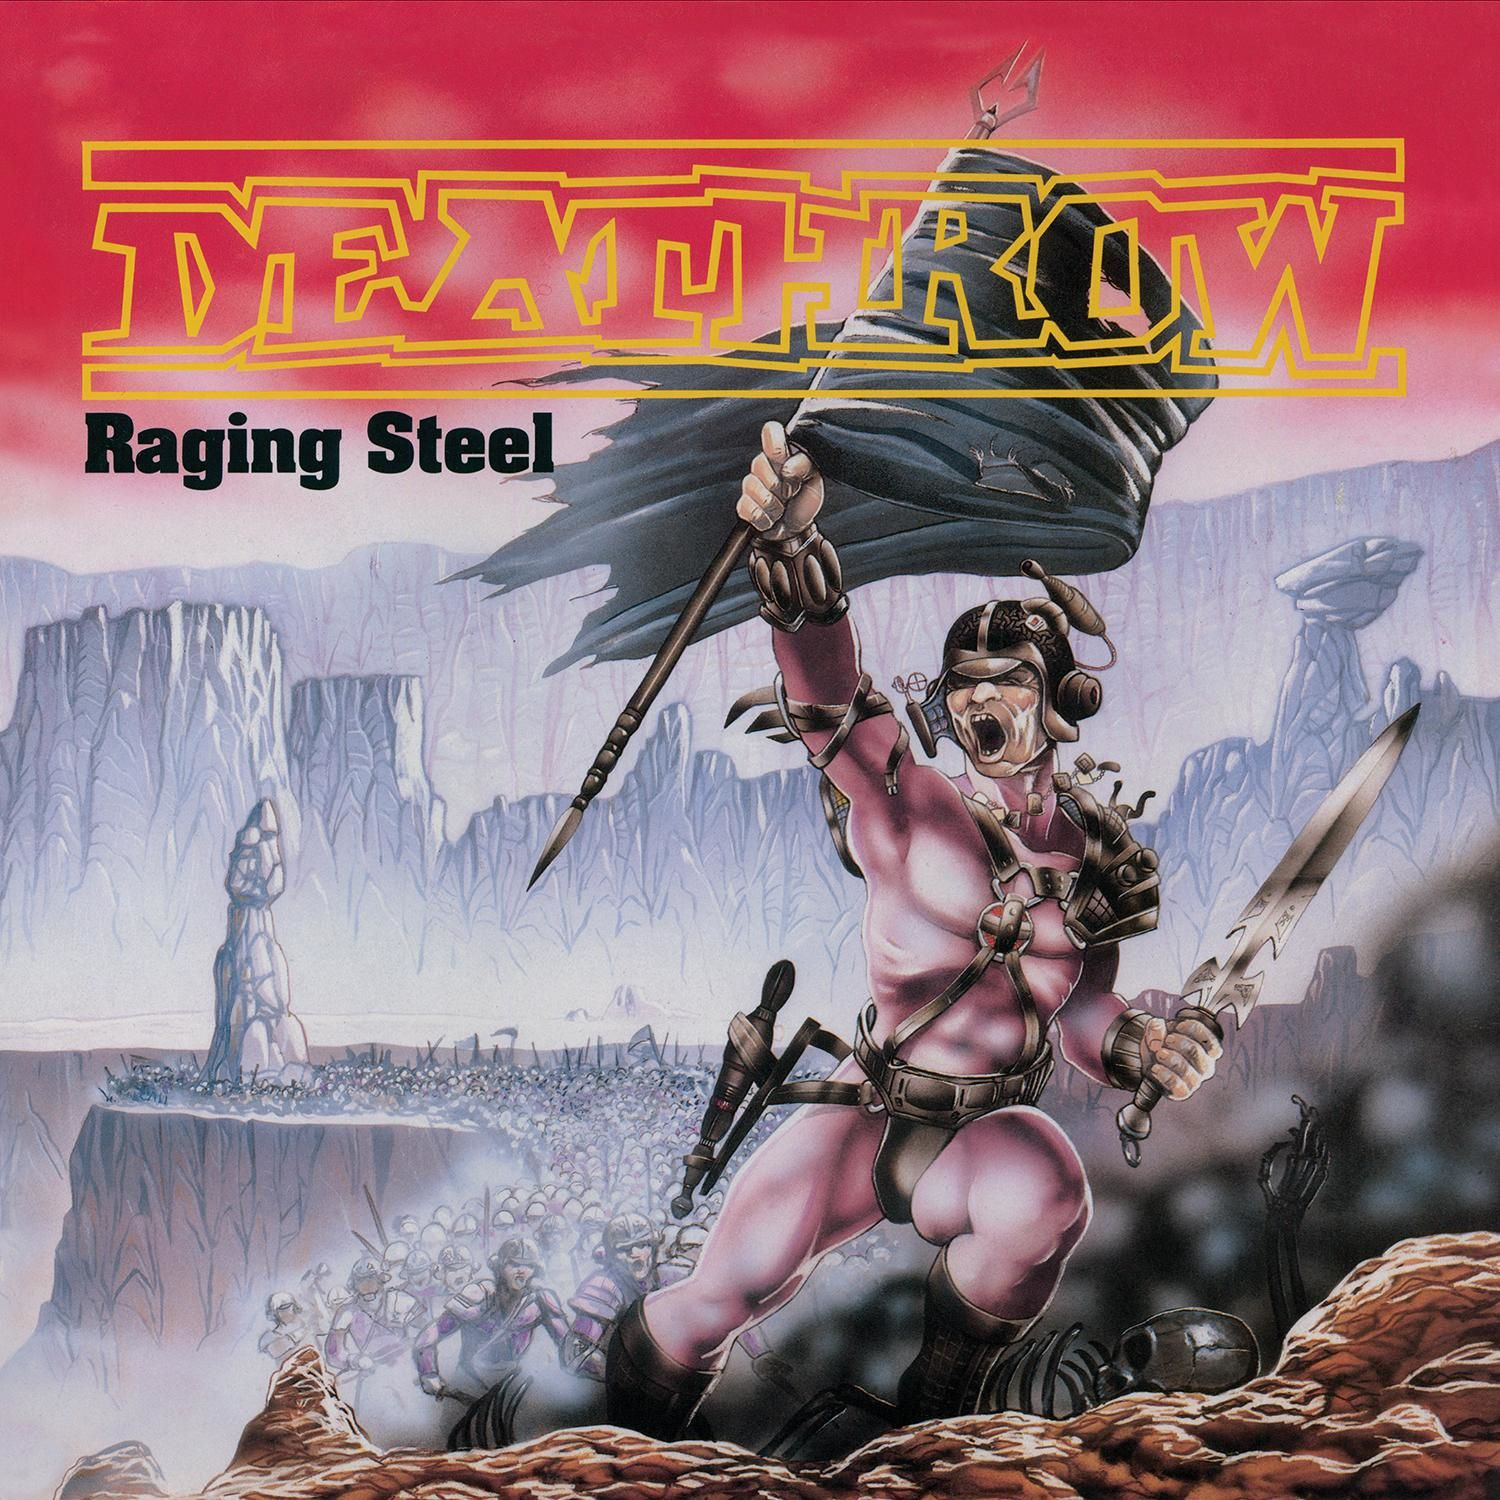 """CD review DEATHROW """"Riders of Doom"""" / """"Raging Steel"""" / """"Deception Ignored"""" - re-issues"""